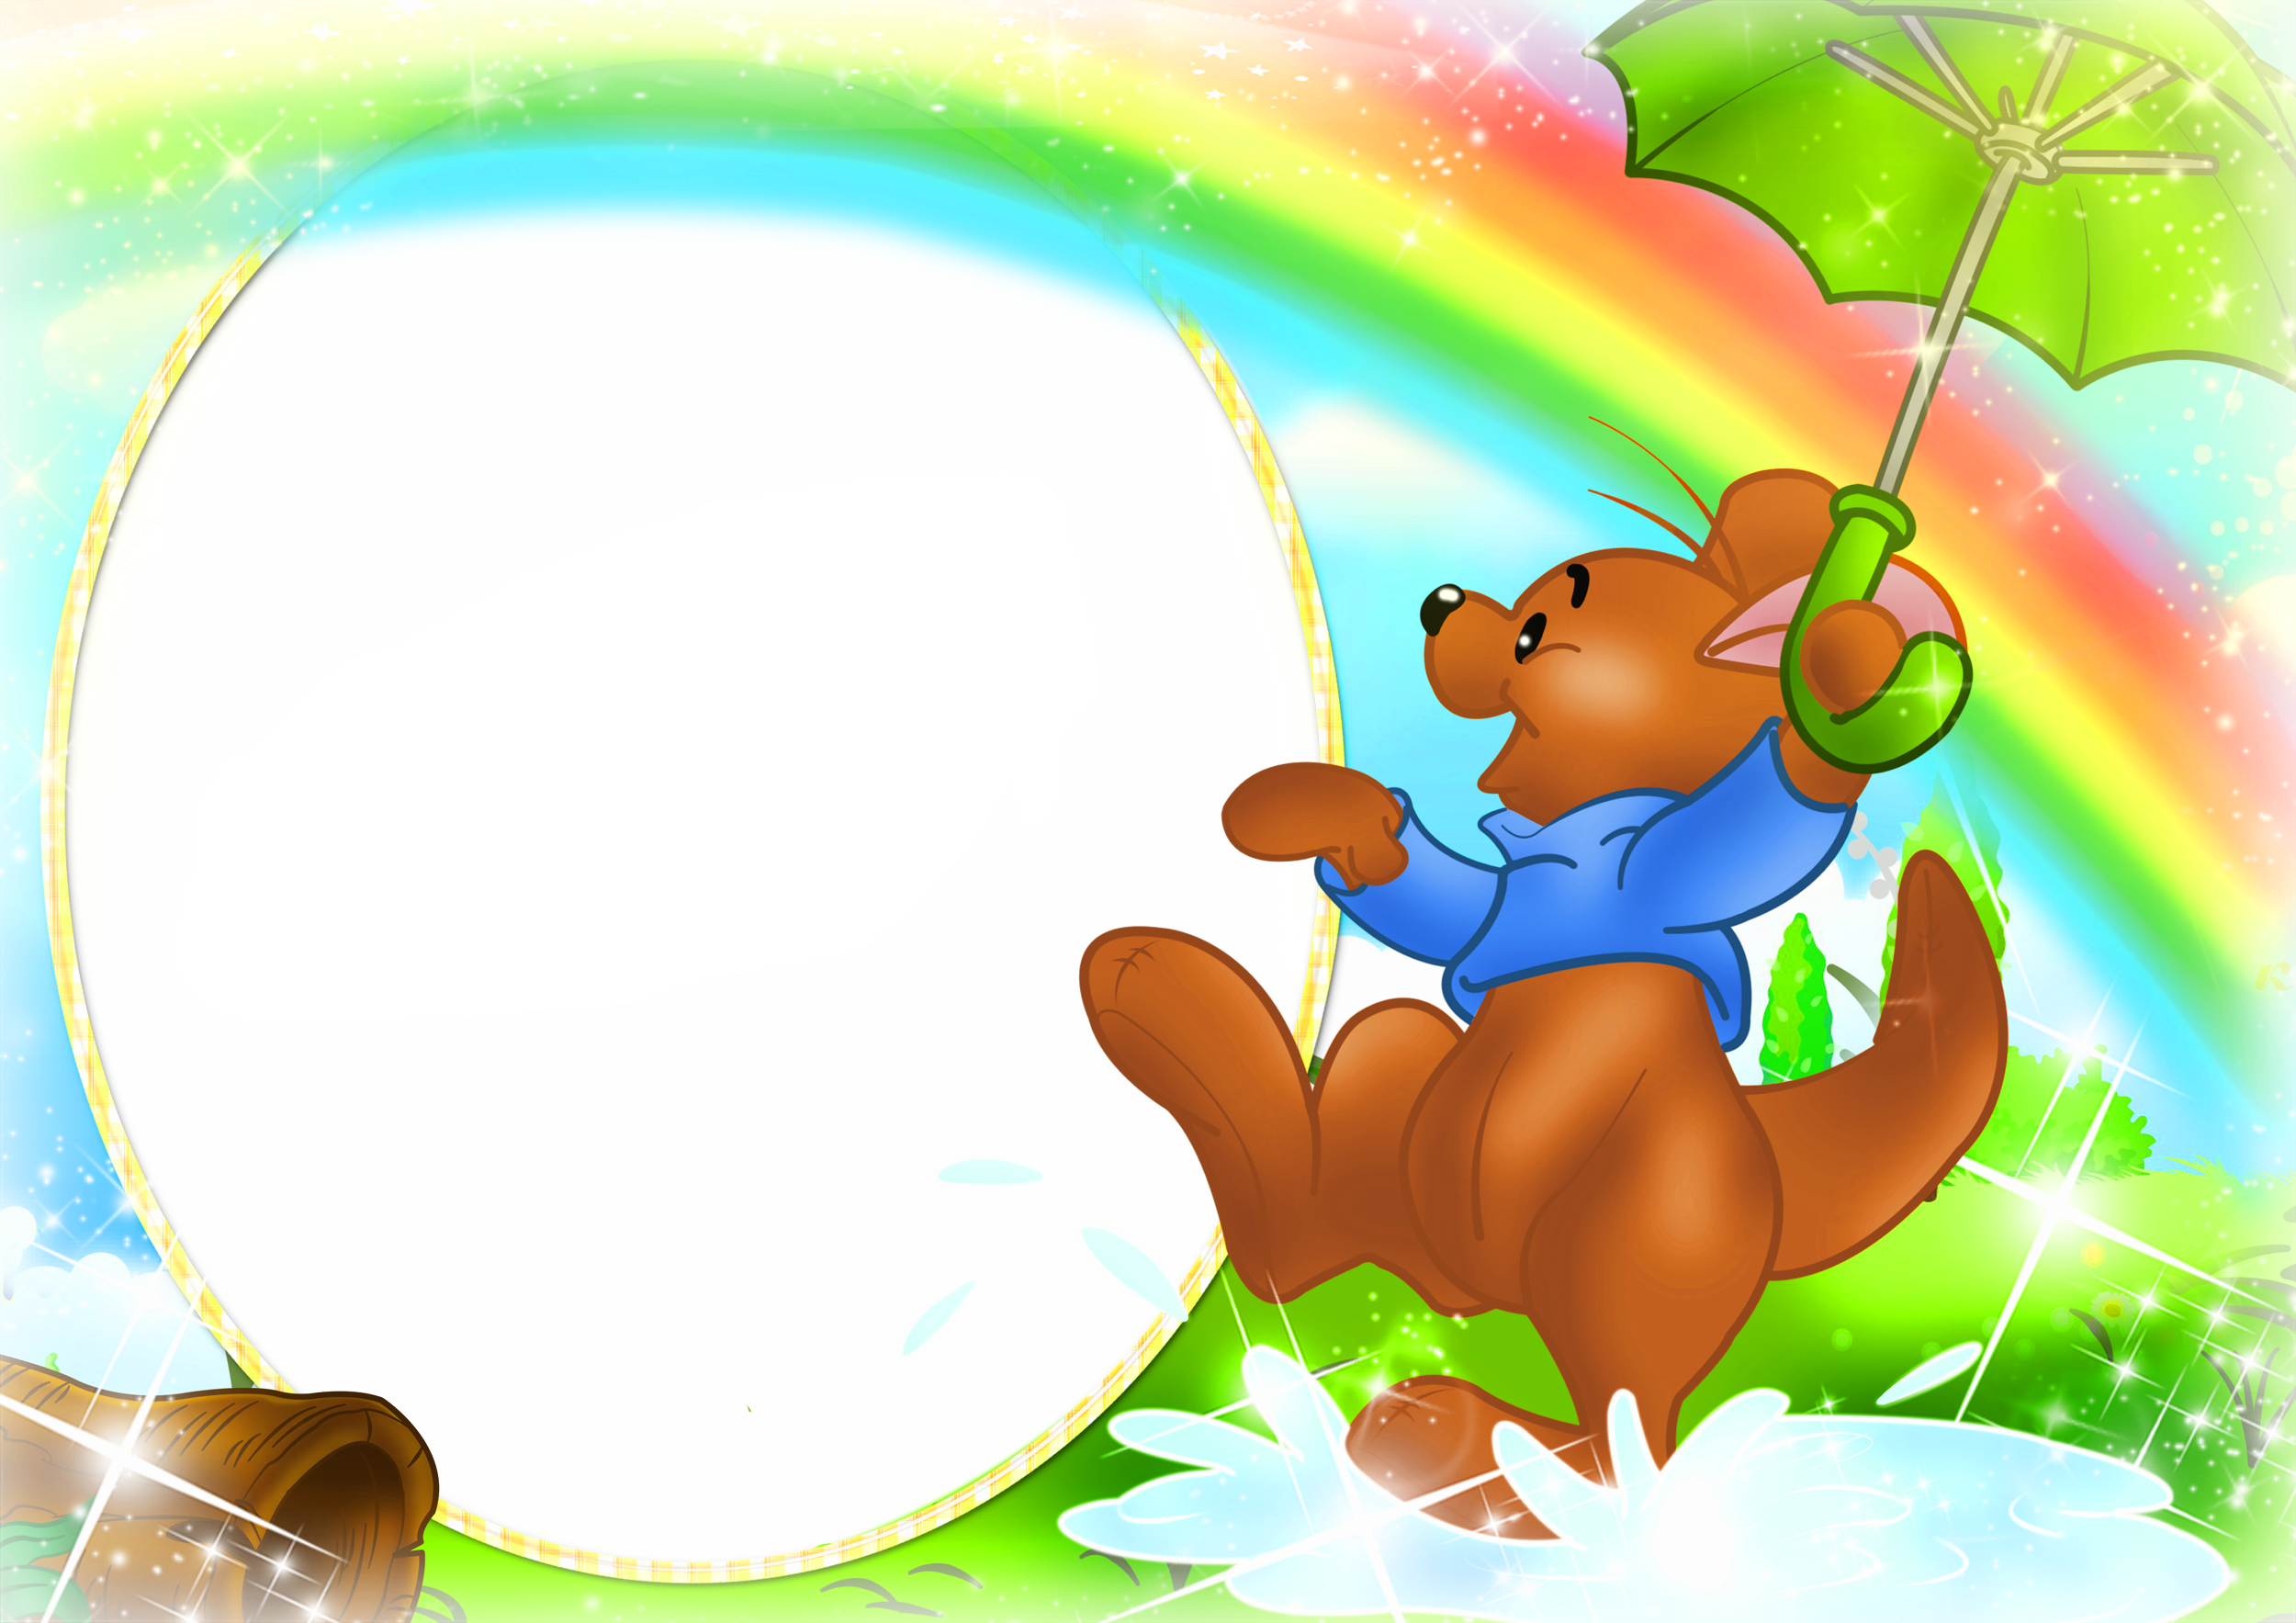 Png backgrounds for kids. Transparent frame with kanga